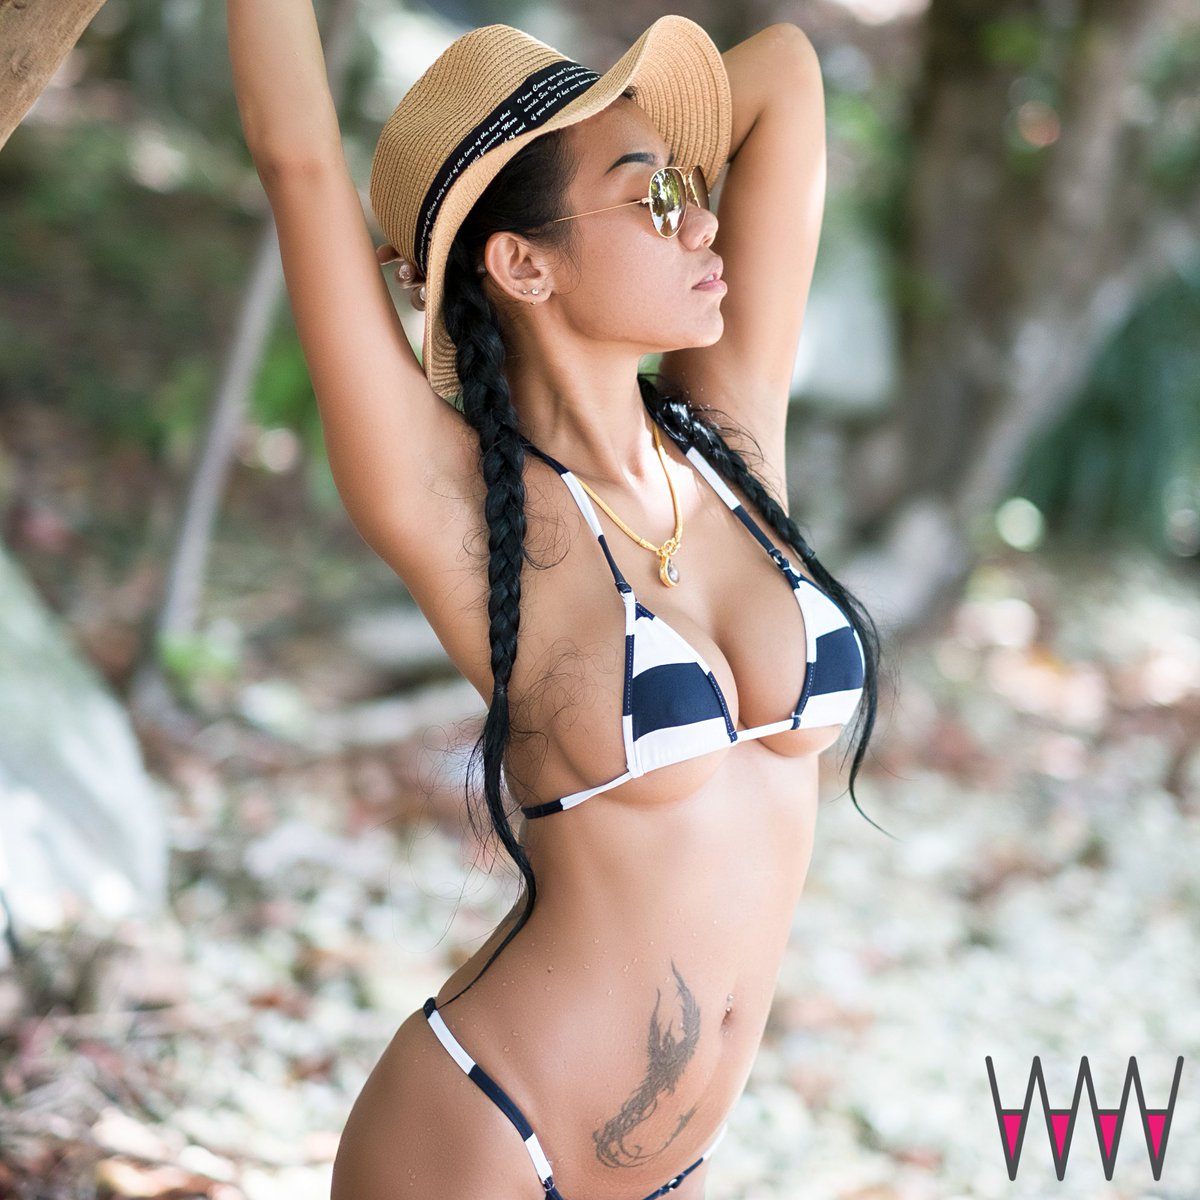 Wicked weasel bikinis pictures